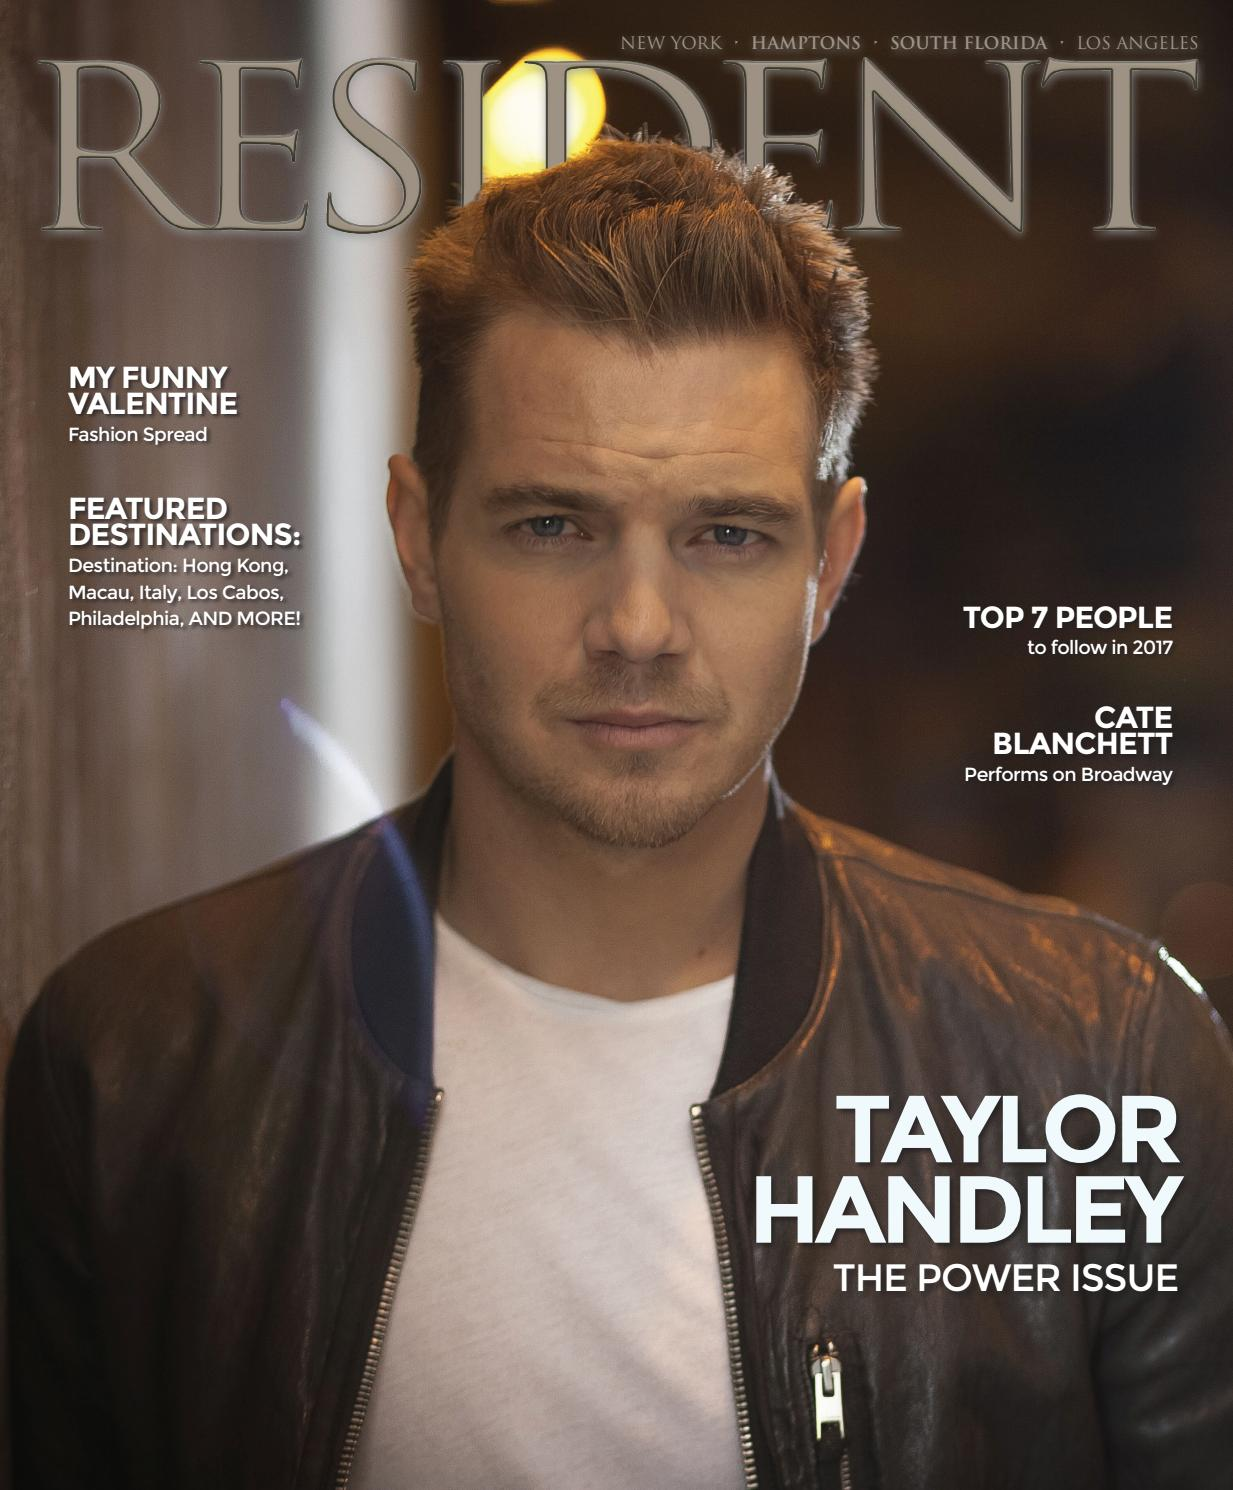 694ccd8ecb974 Resident Magazine February 2017 Issue - Taylor Handley by Resident Magazine  - issuu